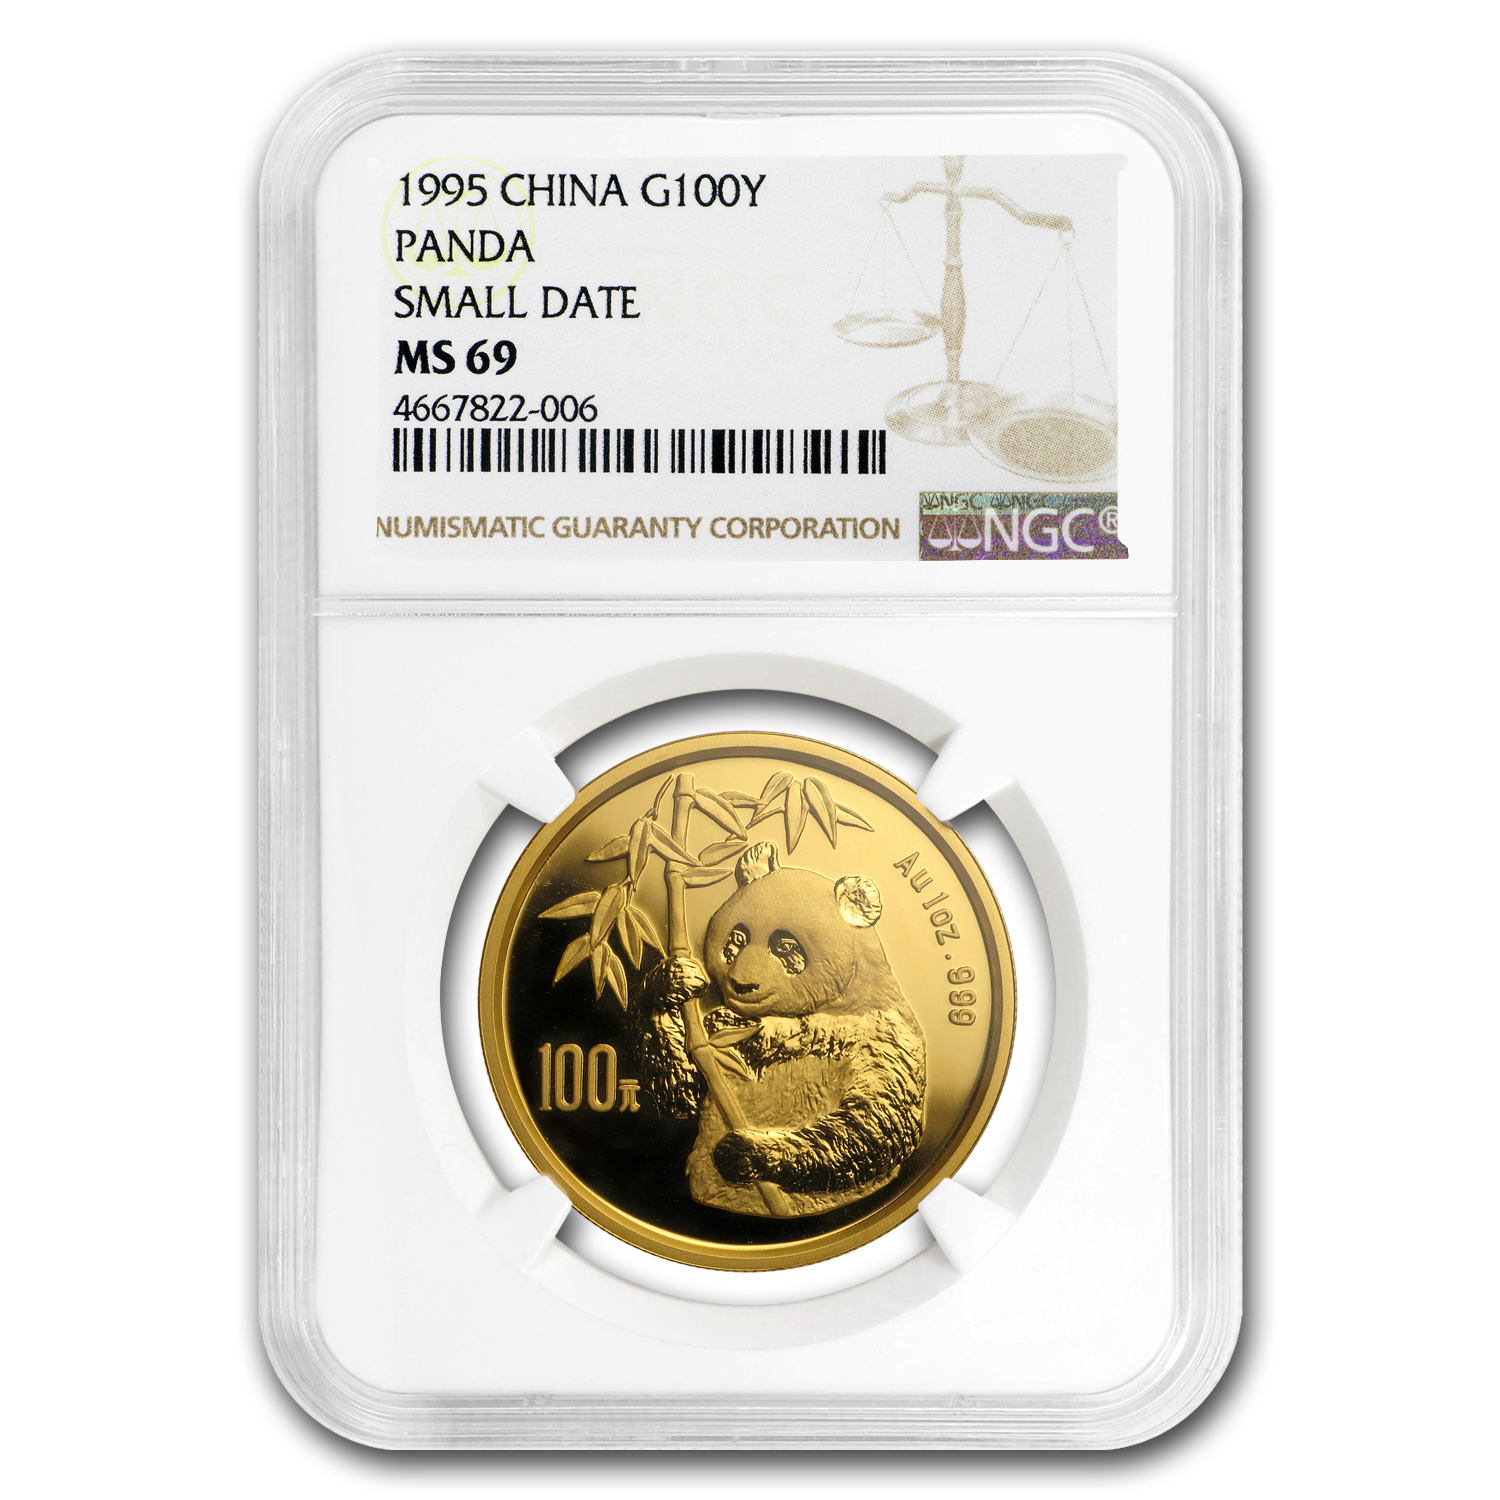 1995 China 1 oz Gold Panda Small Date MS-69 NGC